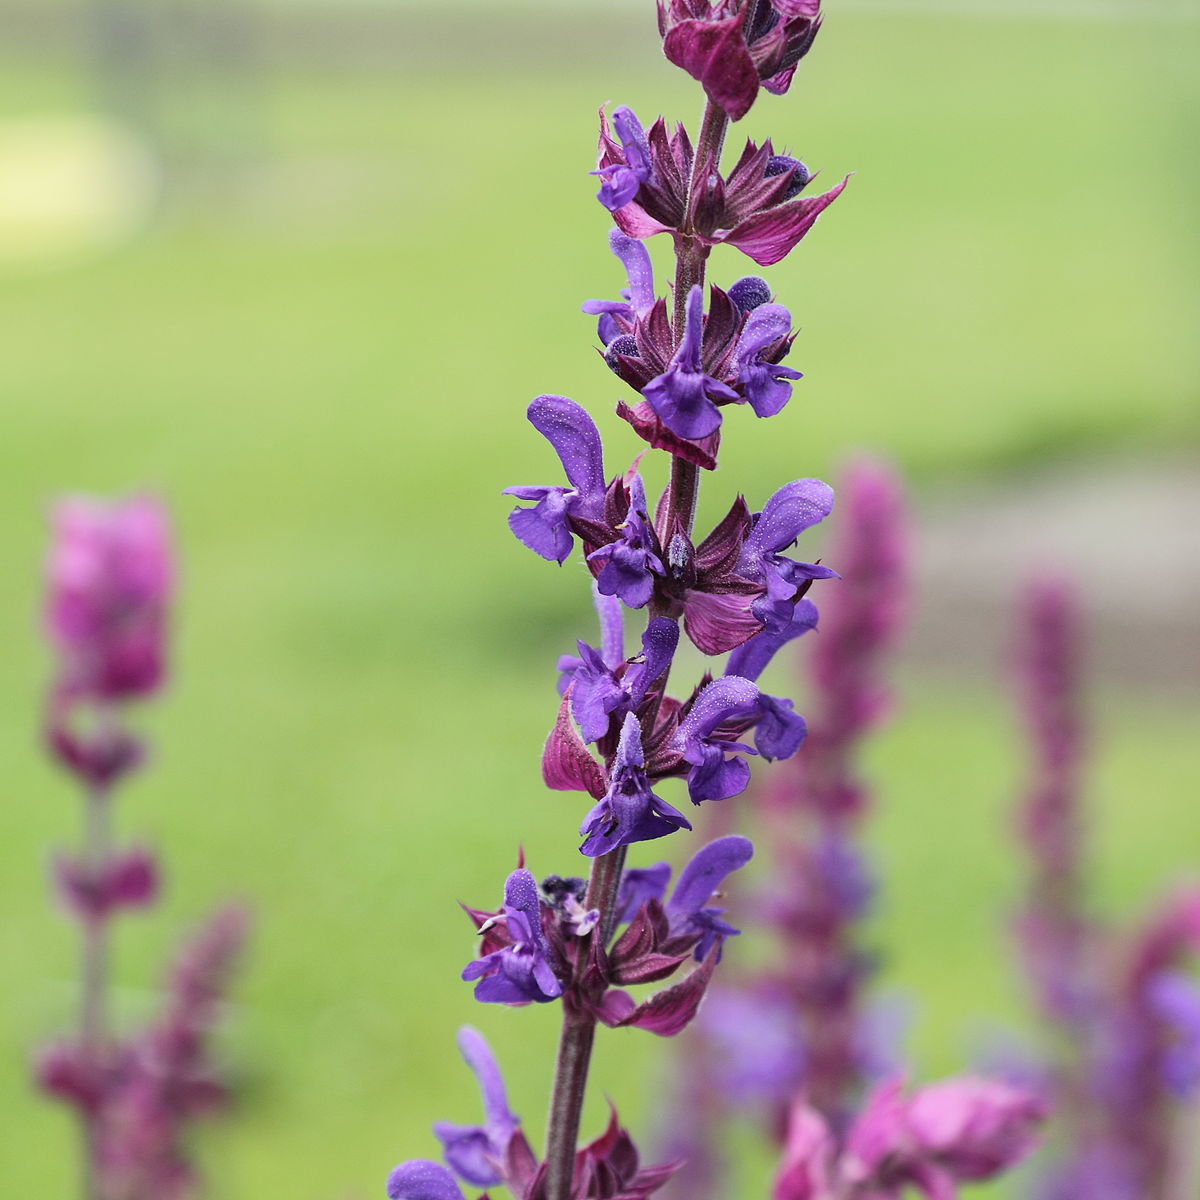 salvia nemorosa wikipedia. Black Bedroom Furniture Sets. Home Design Ideas